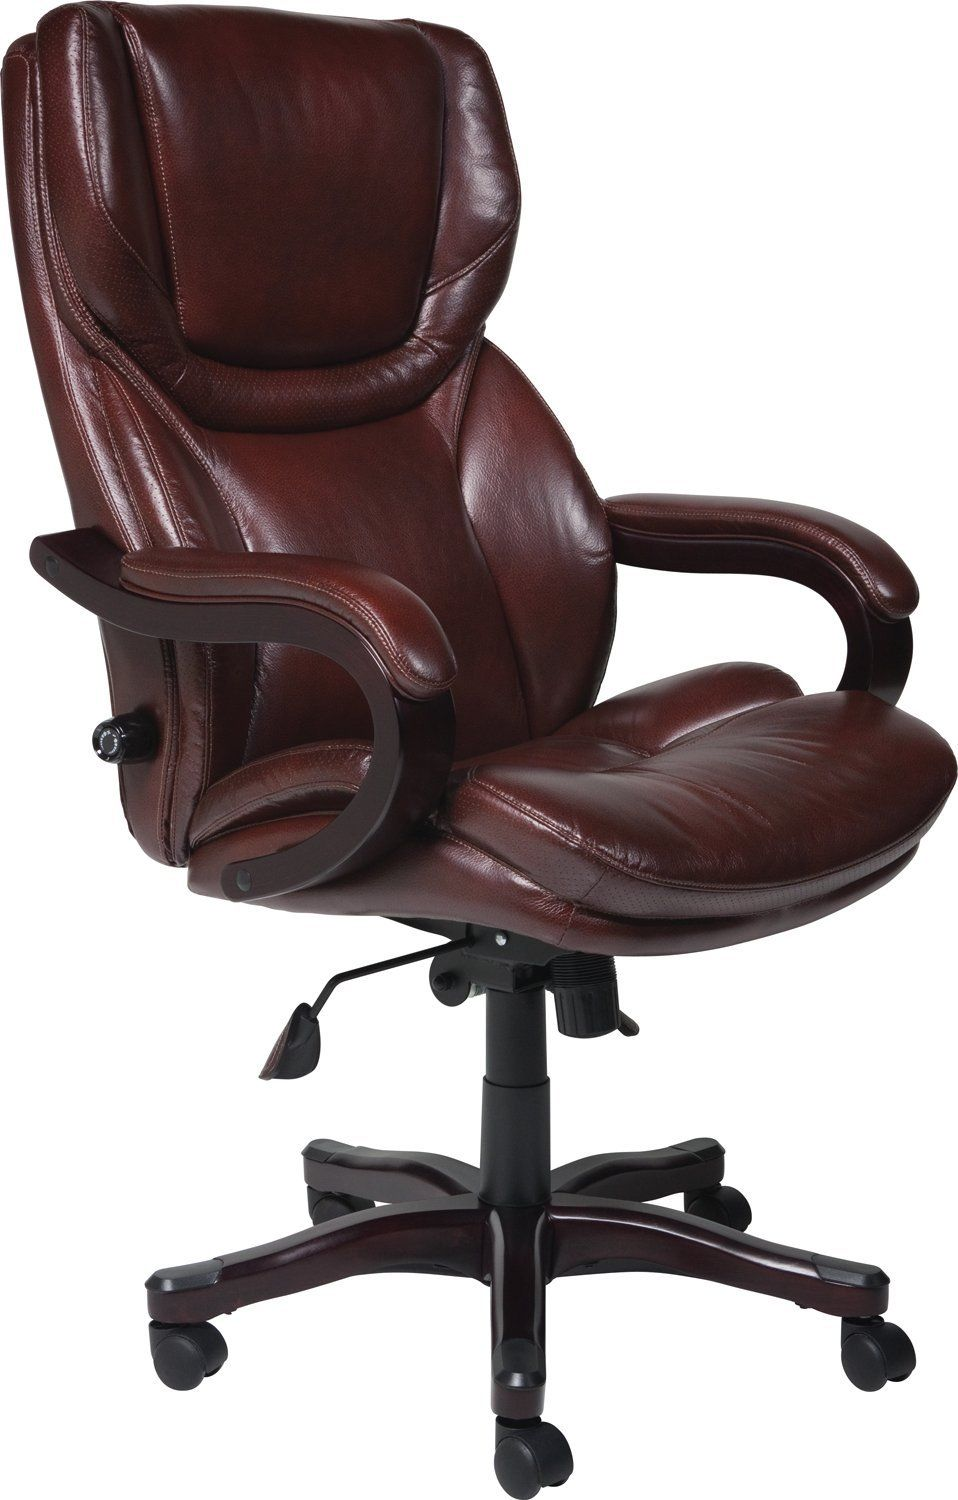 Shop Staples For Great Deals On Serta Executive Bigu0026Tall Office Chair,  Eco Friendly Bonded Leather, Brown.